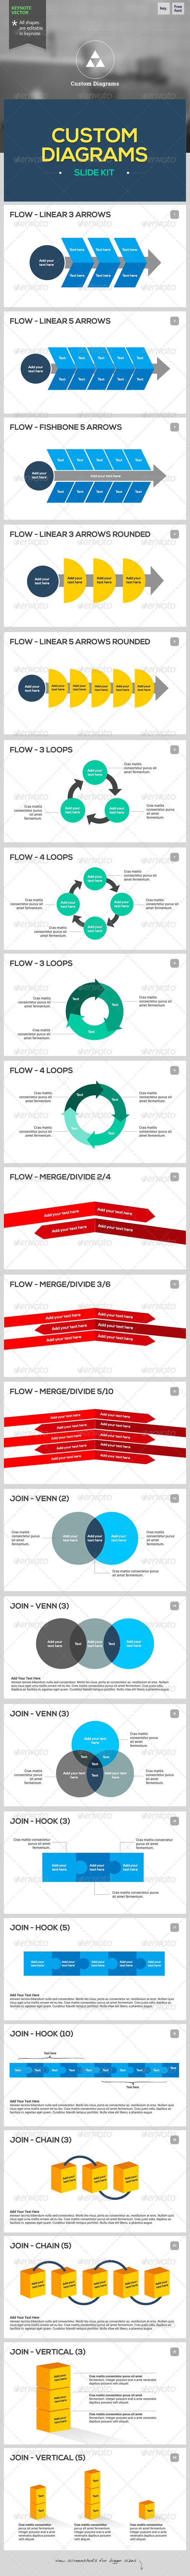 Custom Diagrams - Keynote Template  - Keynote Templates Presentation Templates